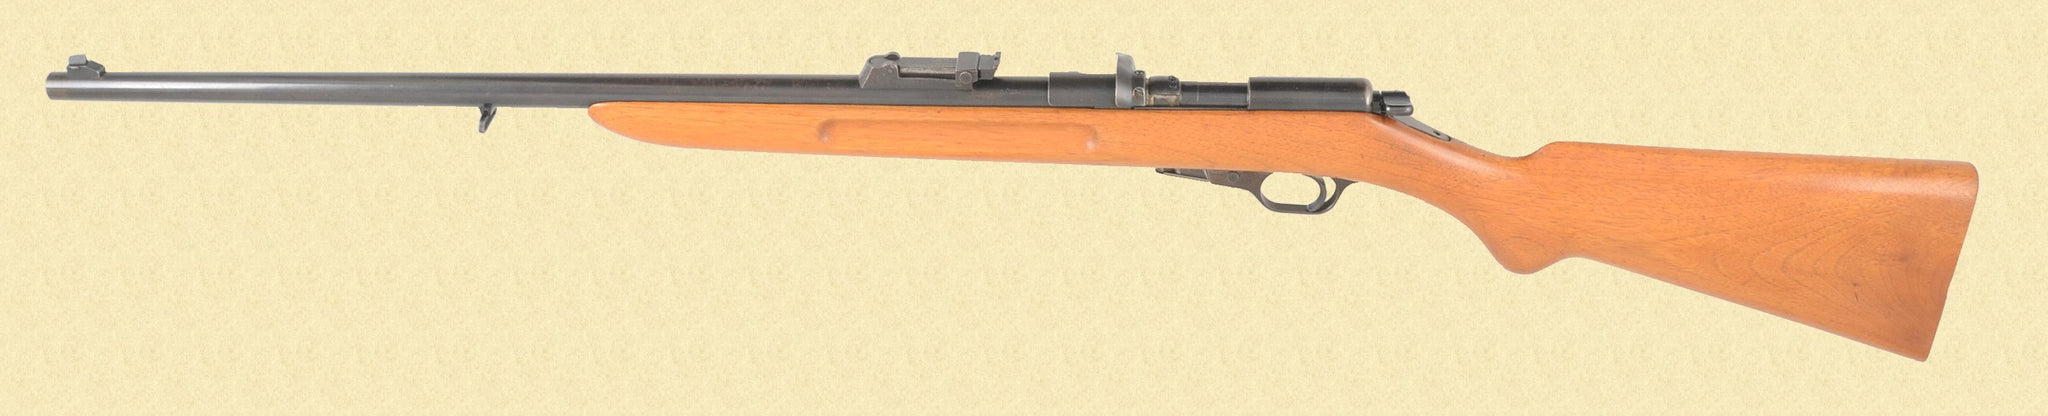 WALTHER M-2